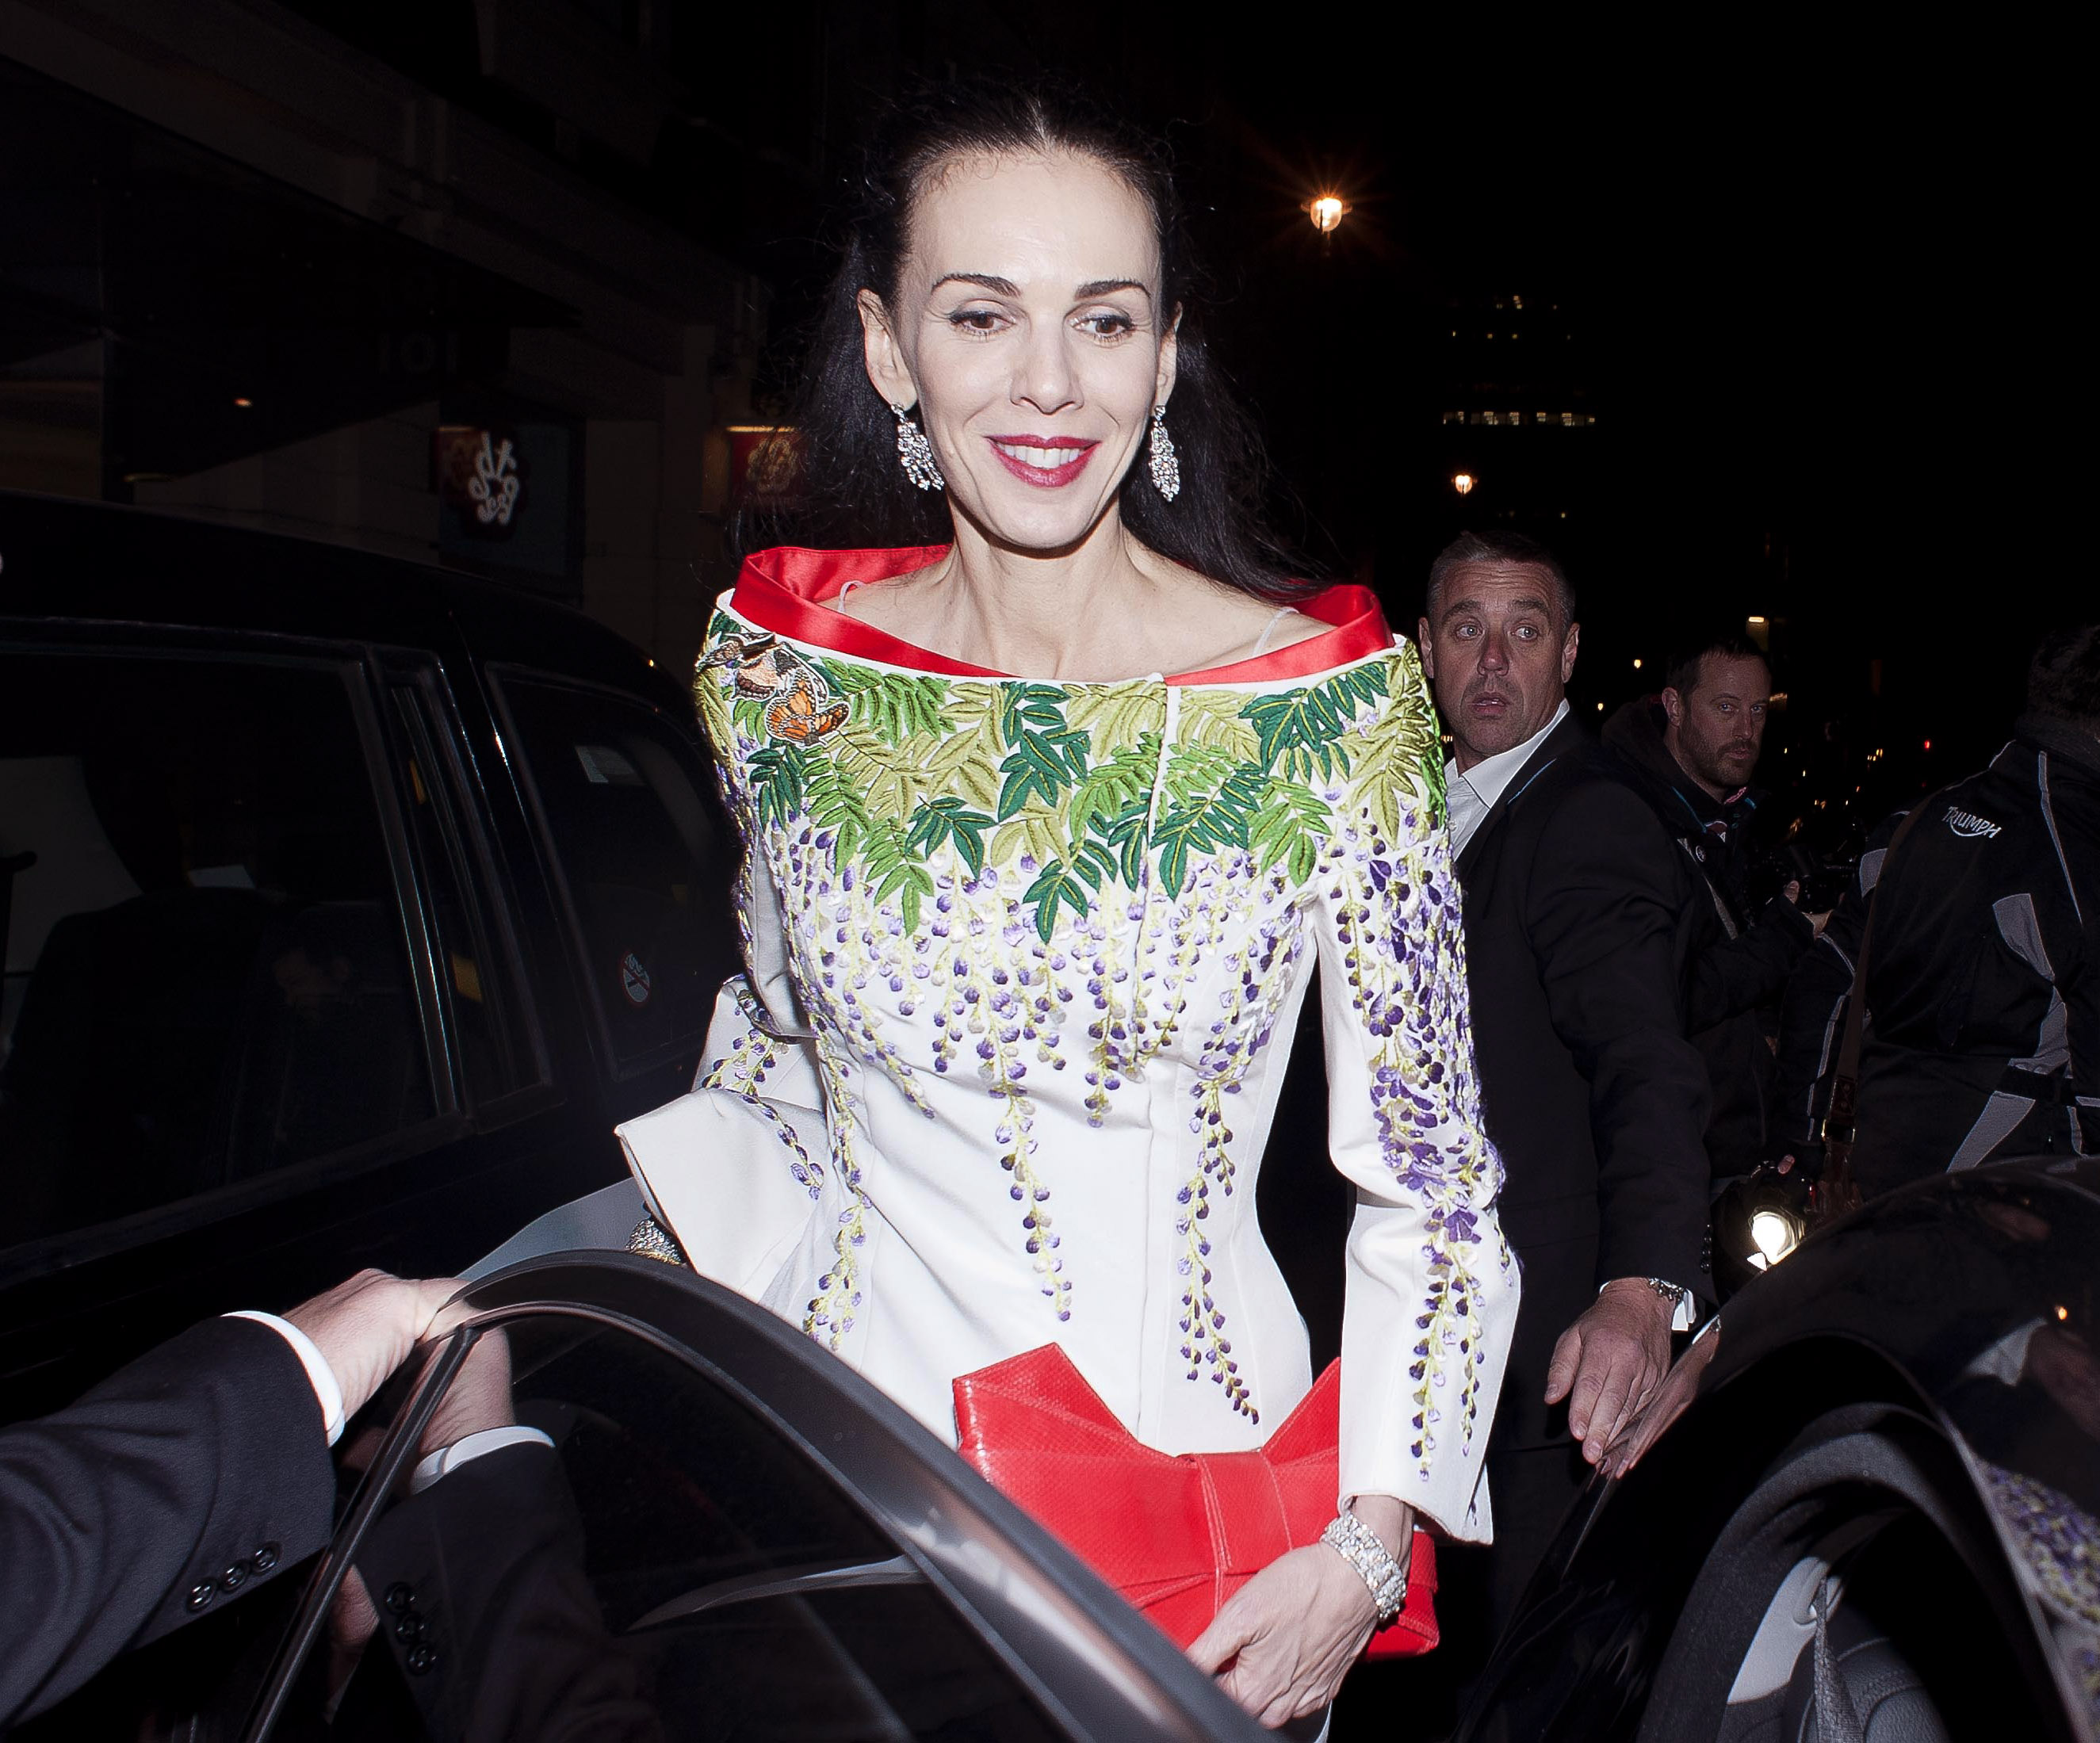 LONDON, UNITED KINGDOM - DECEMBER 02: L'Wren Scott is sighted leaving the British Fashion Awards 2013 on December 2, 2013 in